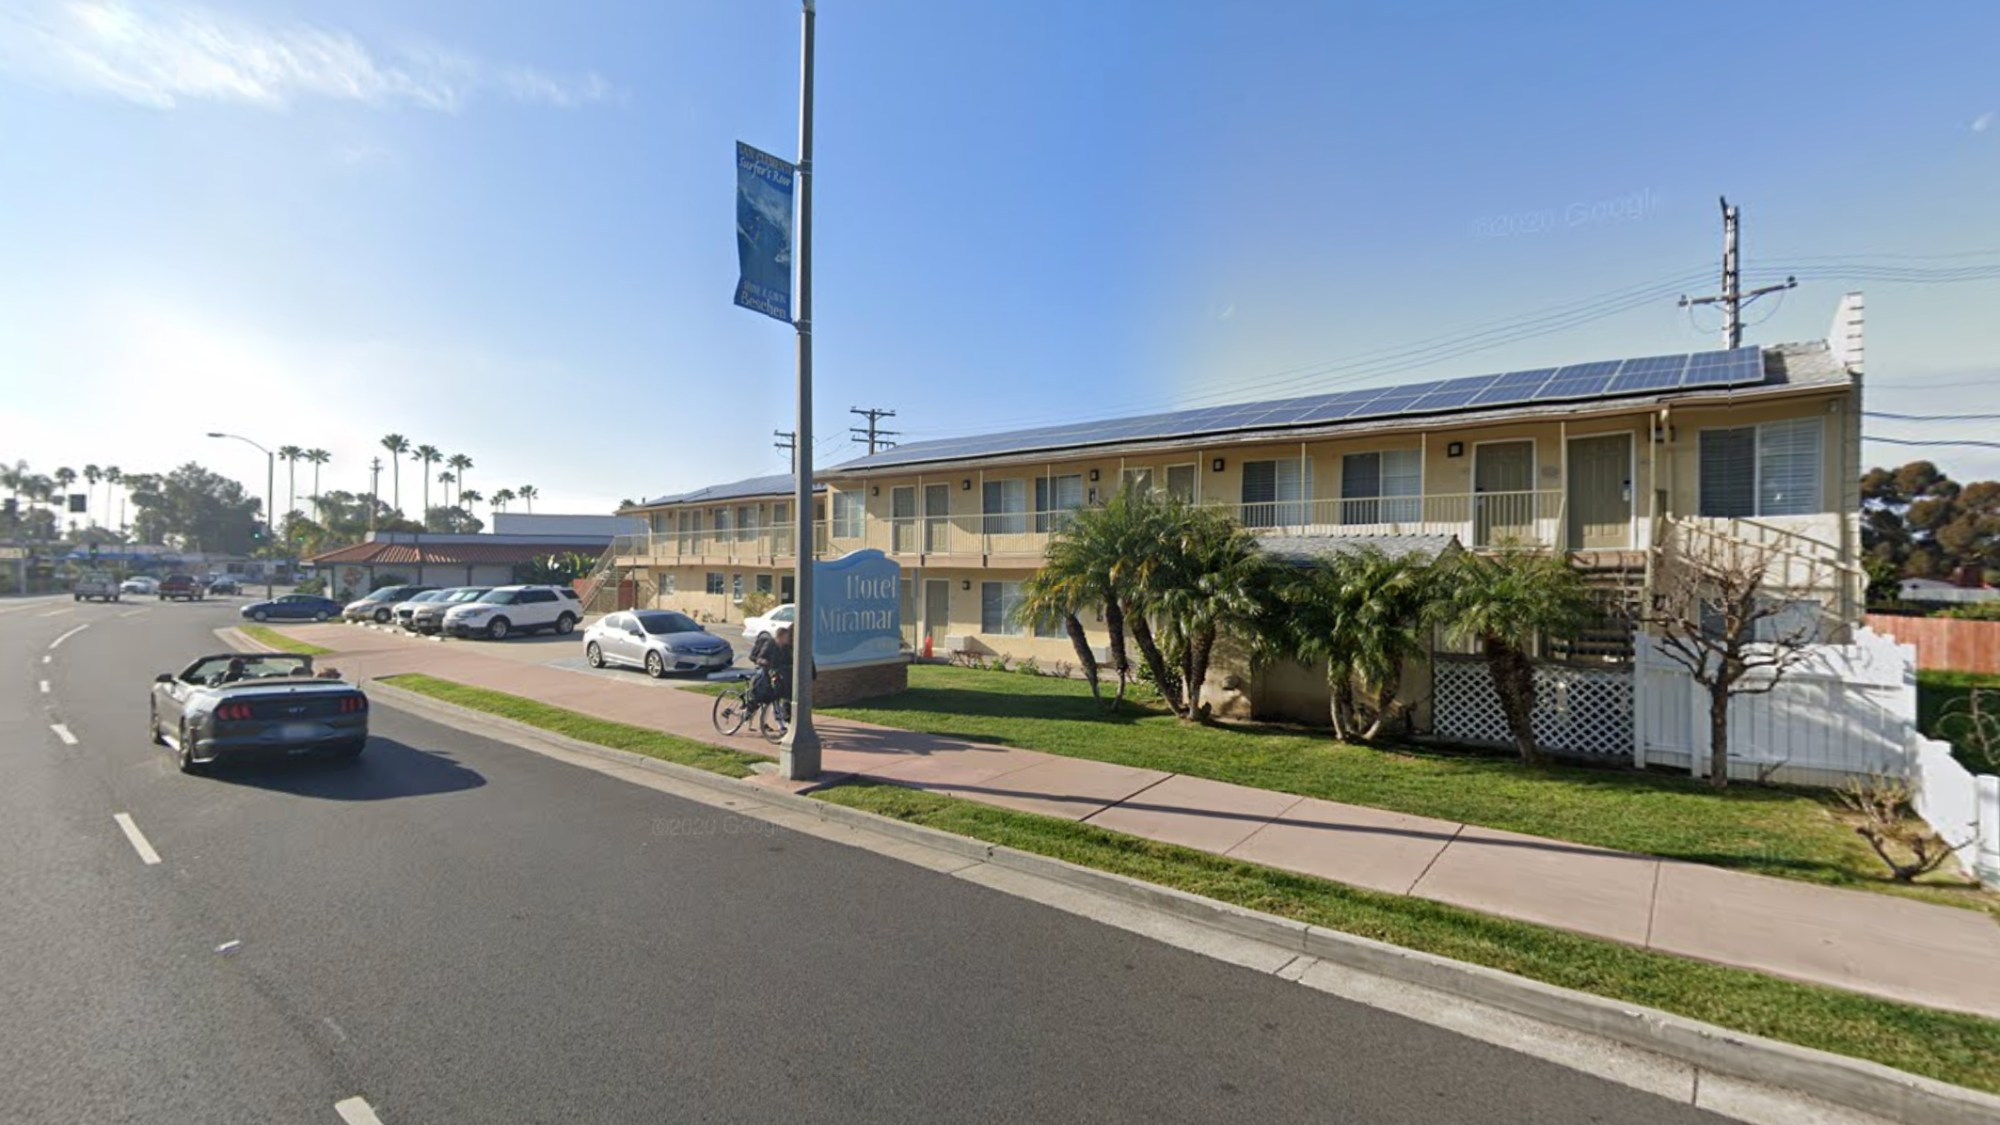 Hotel Miramar in San Clemente is seen in a Google Maps Street View image.